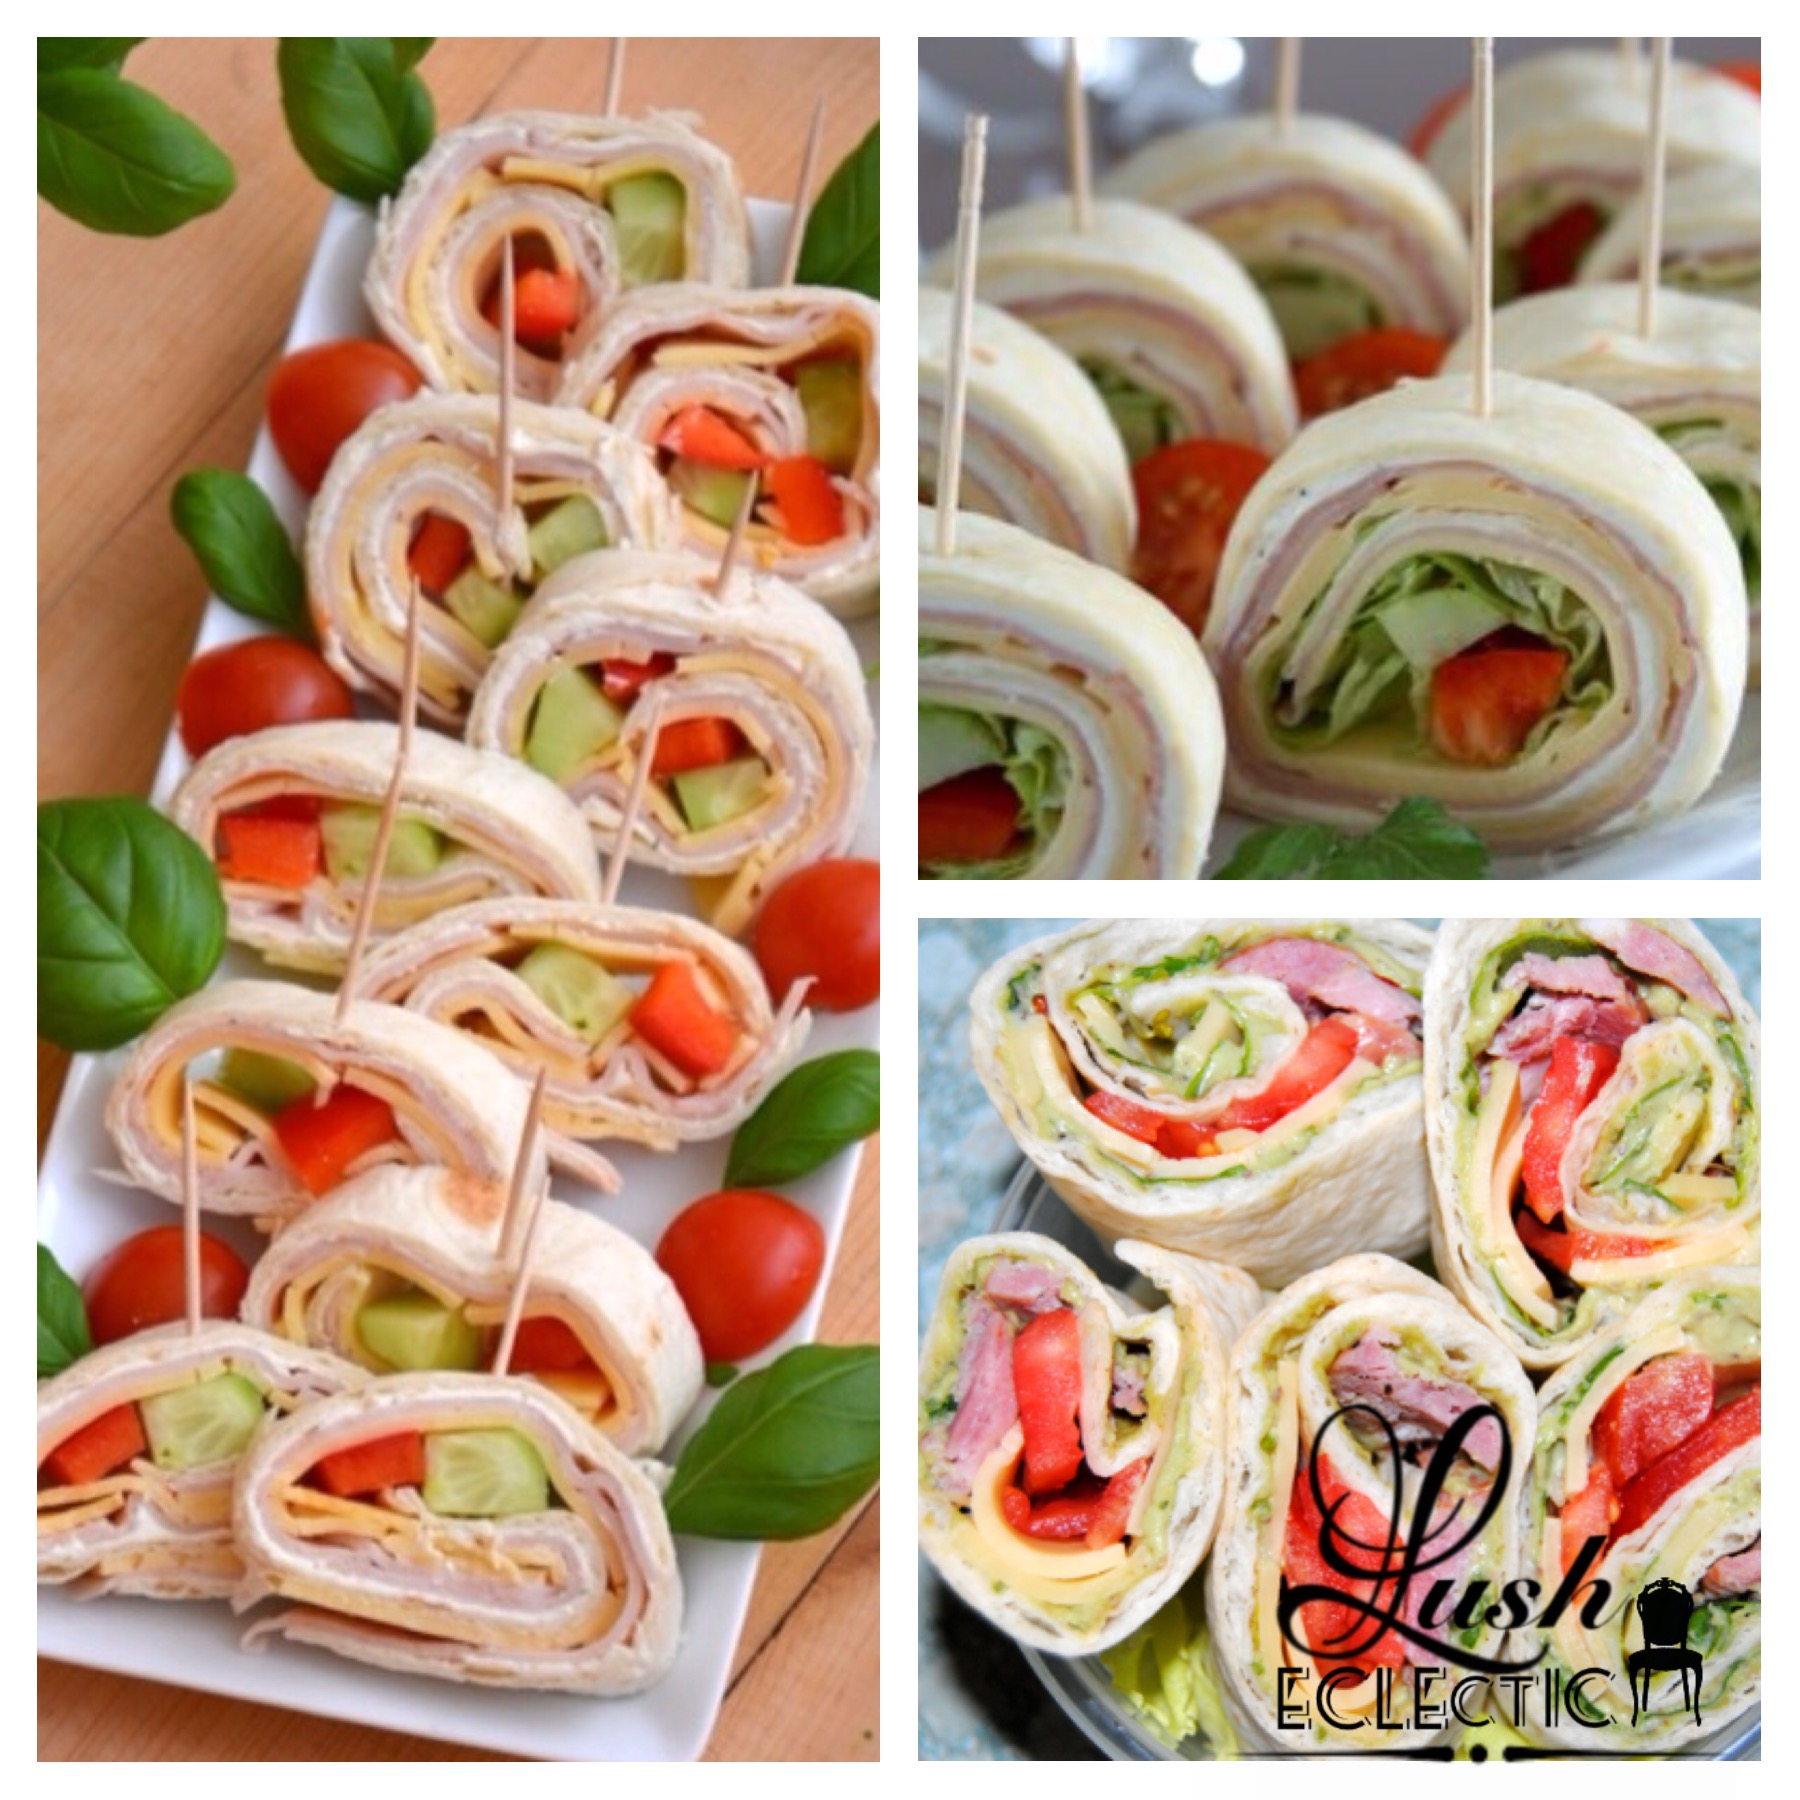 Party food ideas lush eclectic design lifestyle for Canape wraps